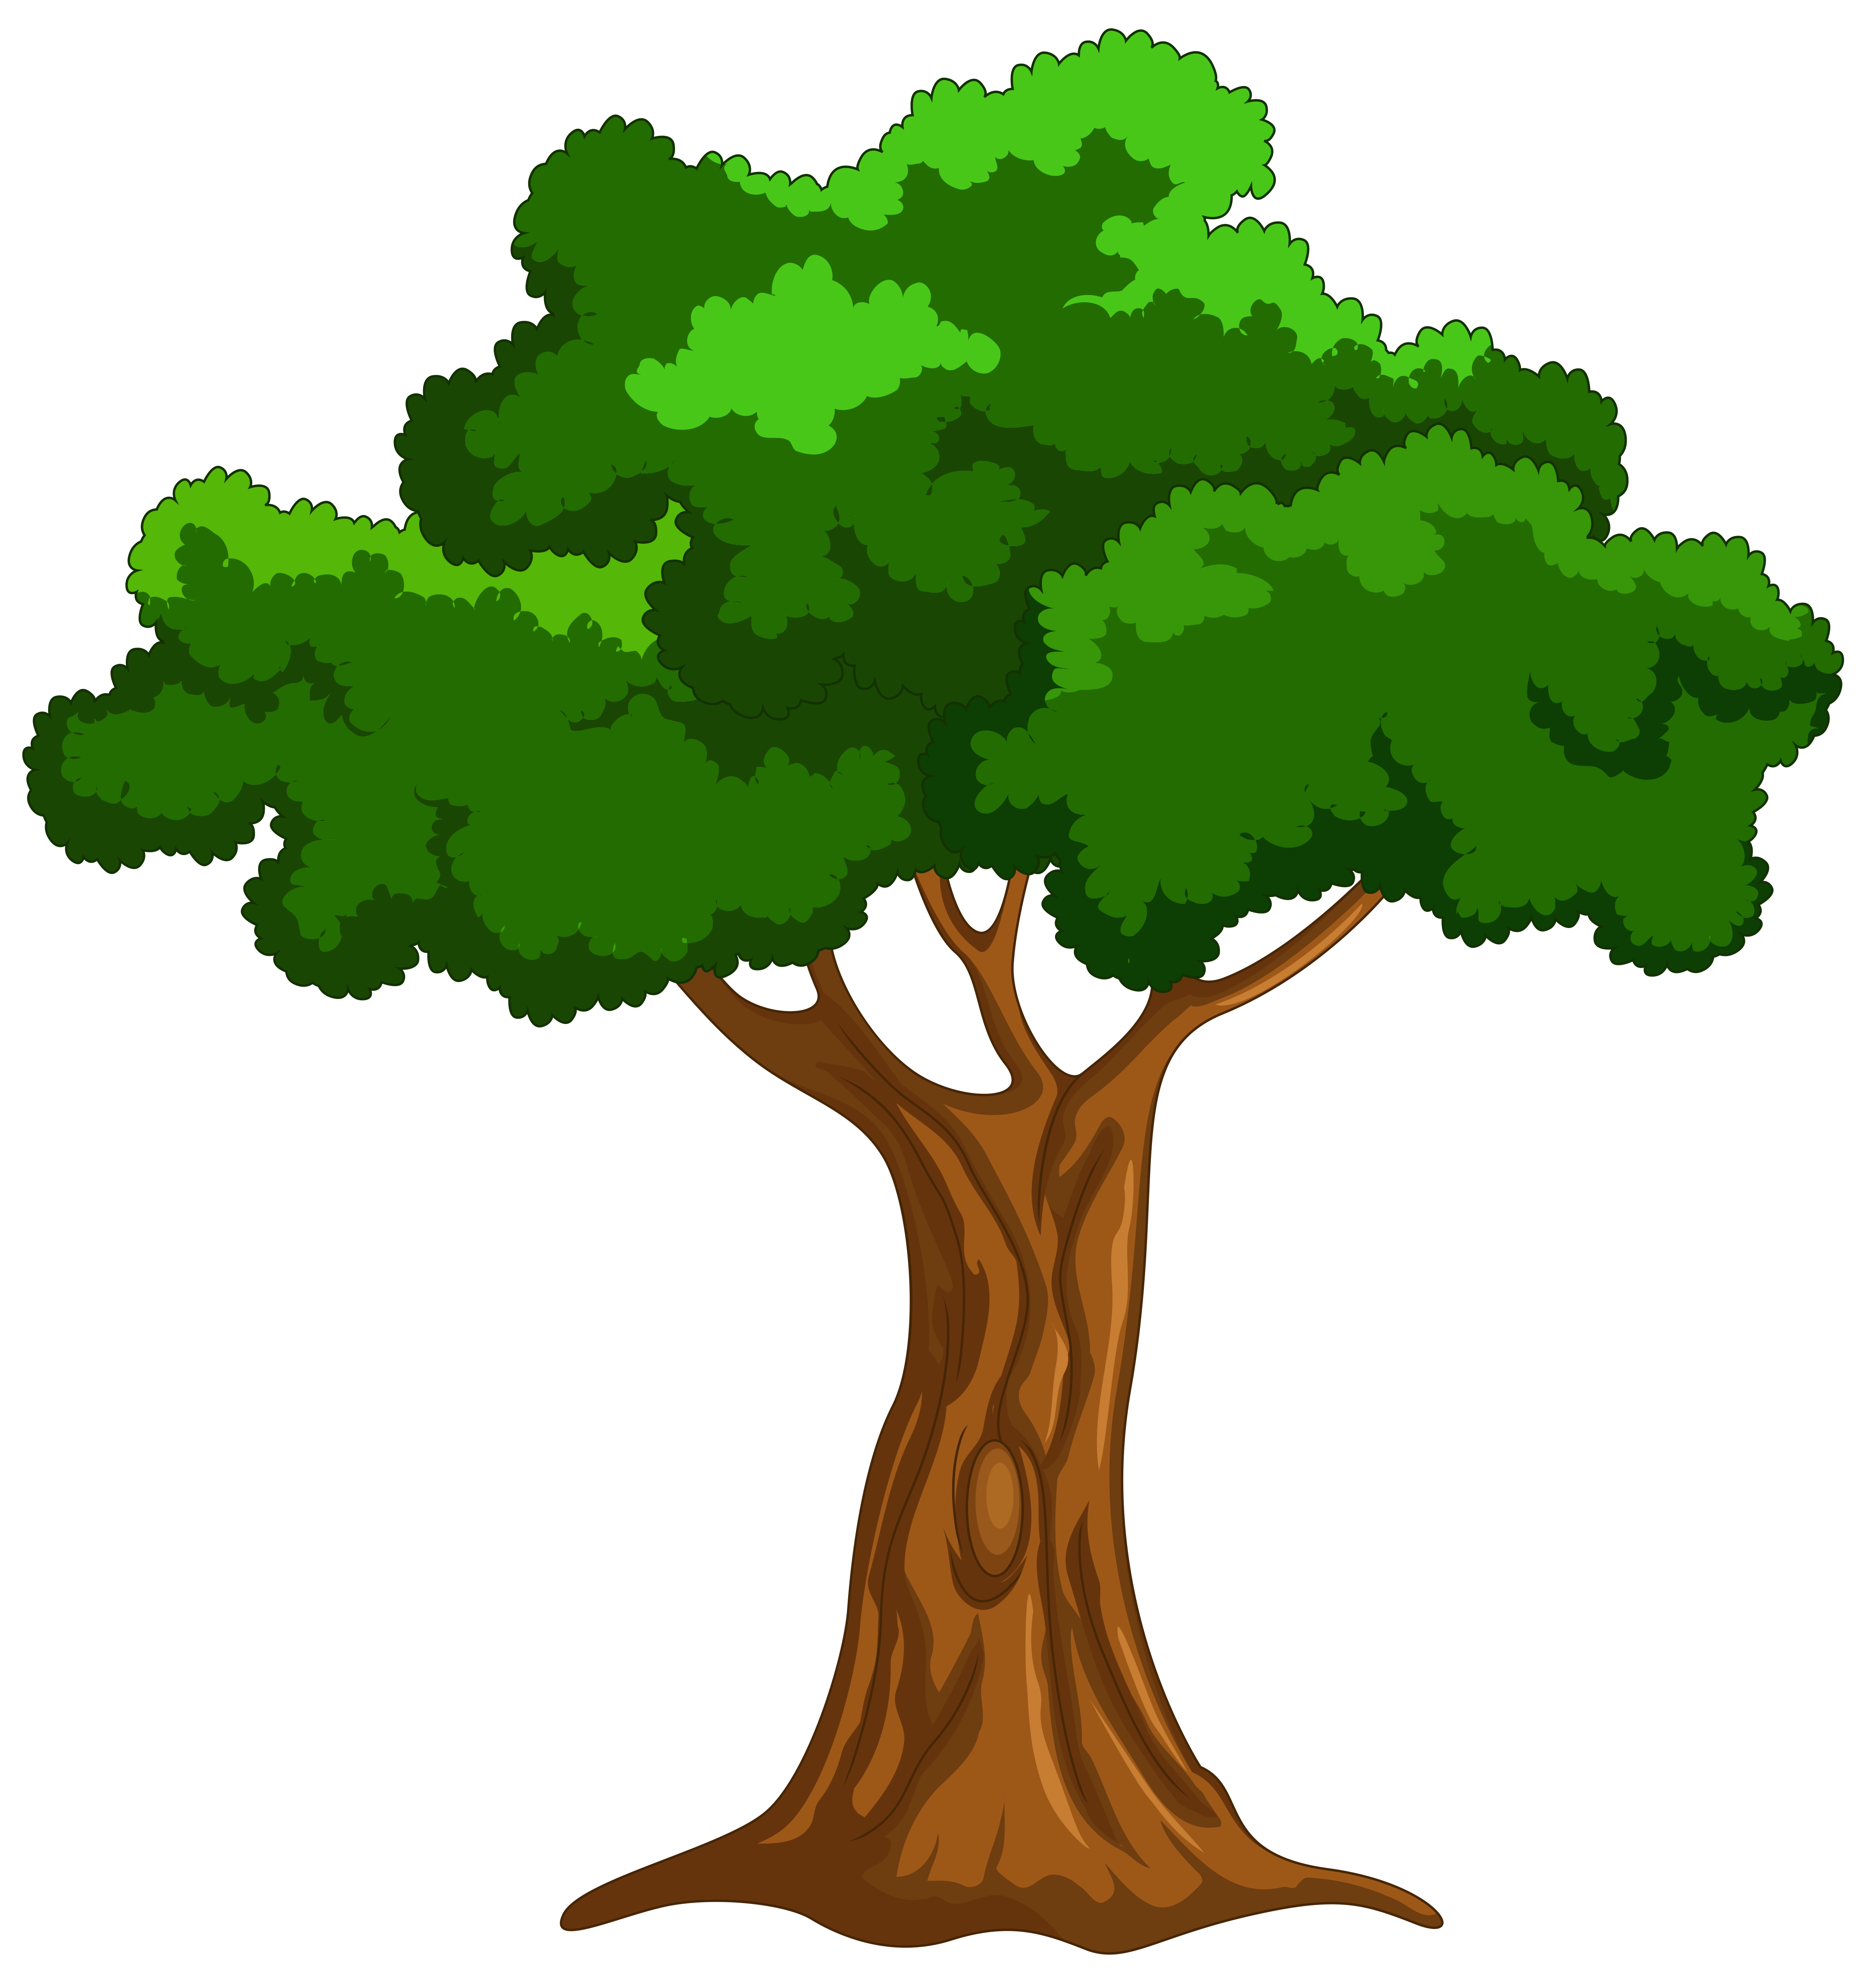 Wood landscaping clipart clipart transparent download Trees clipart animated for free download and use images in ... clipart transparent download